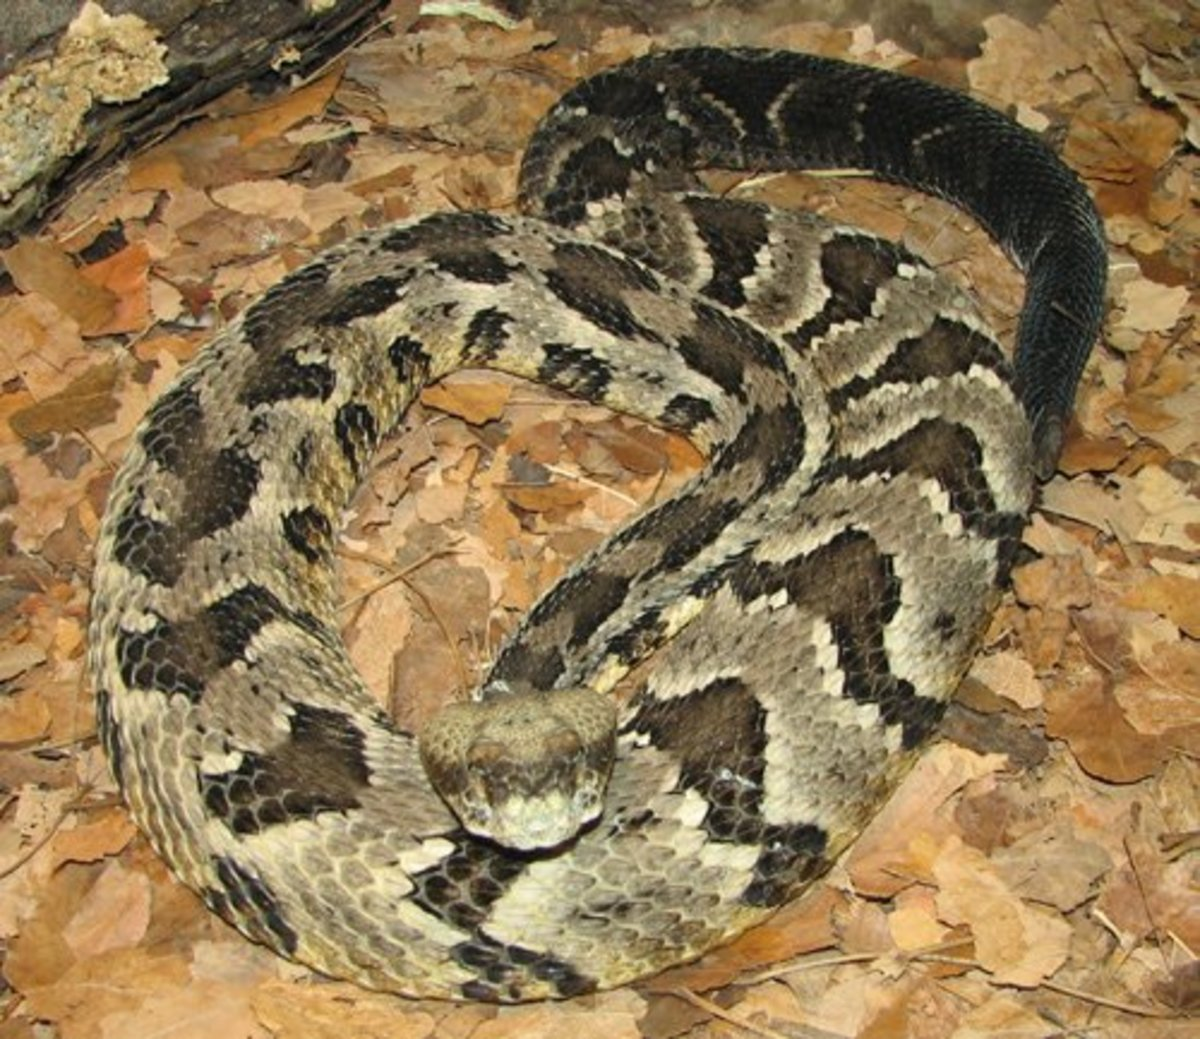 Timber Rattlesnake. Photo by by Trisha M. Shears. Public domain.